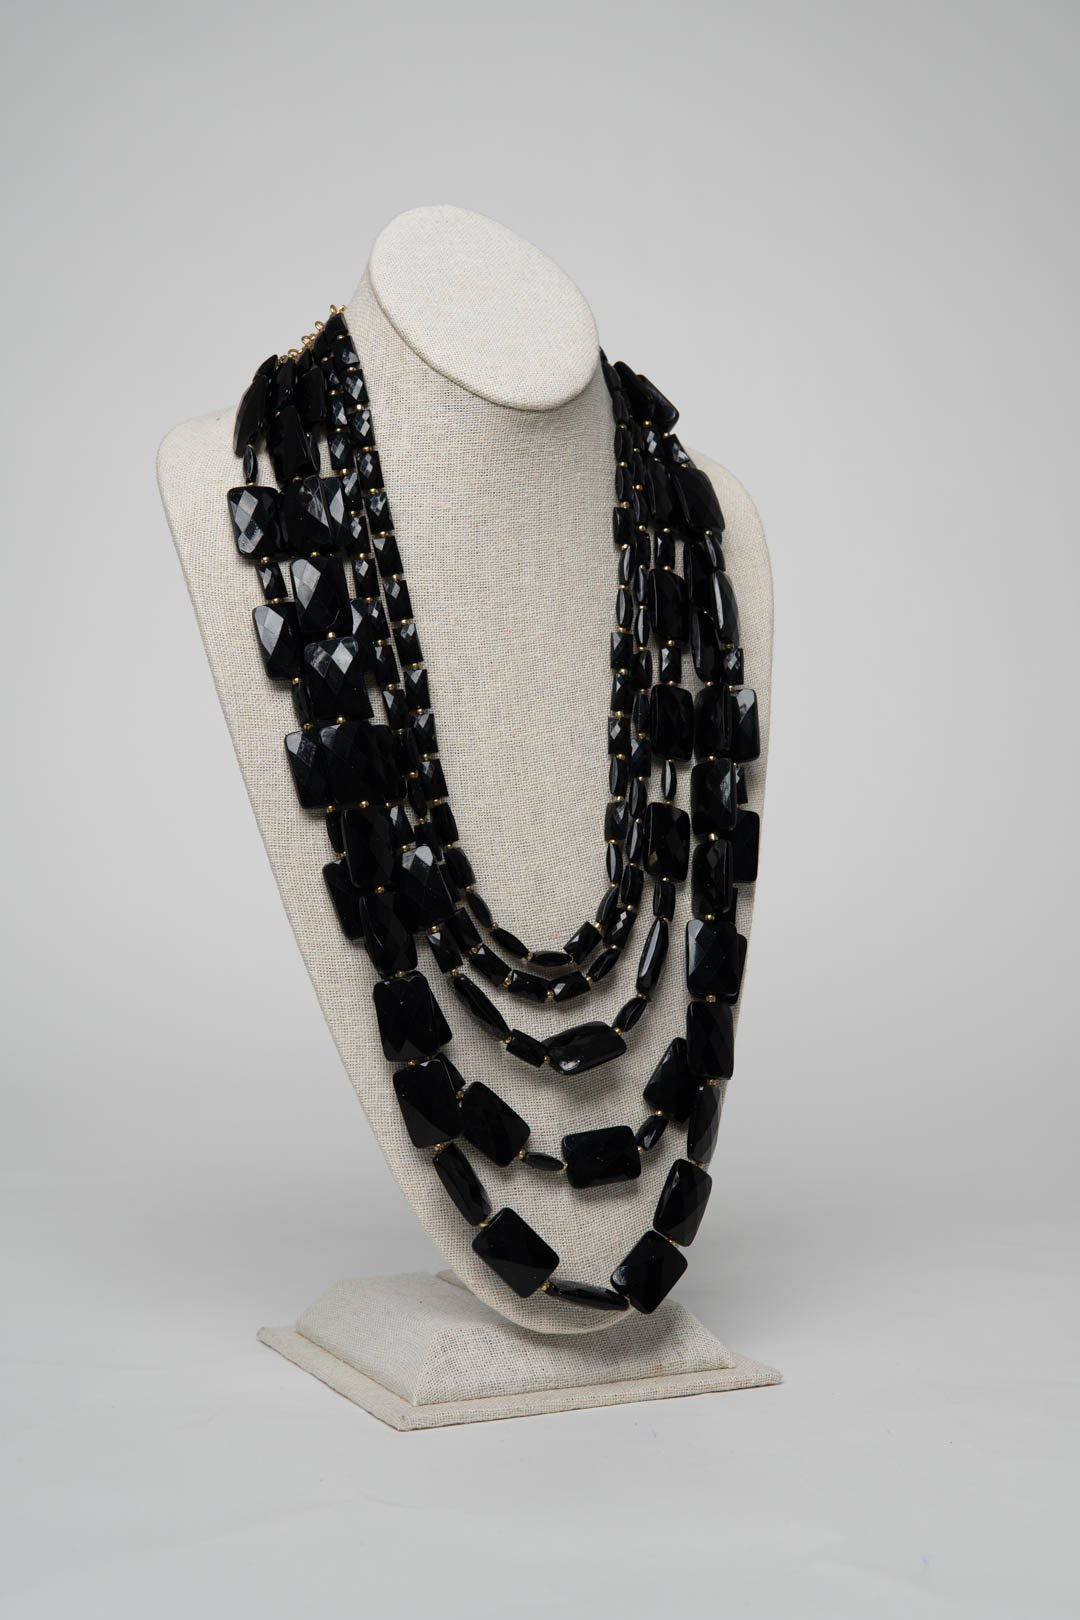 Fiesta Necklace Emerald Cut - Onyx - Necklace